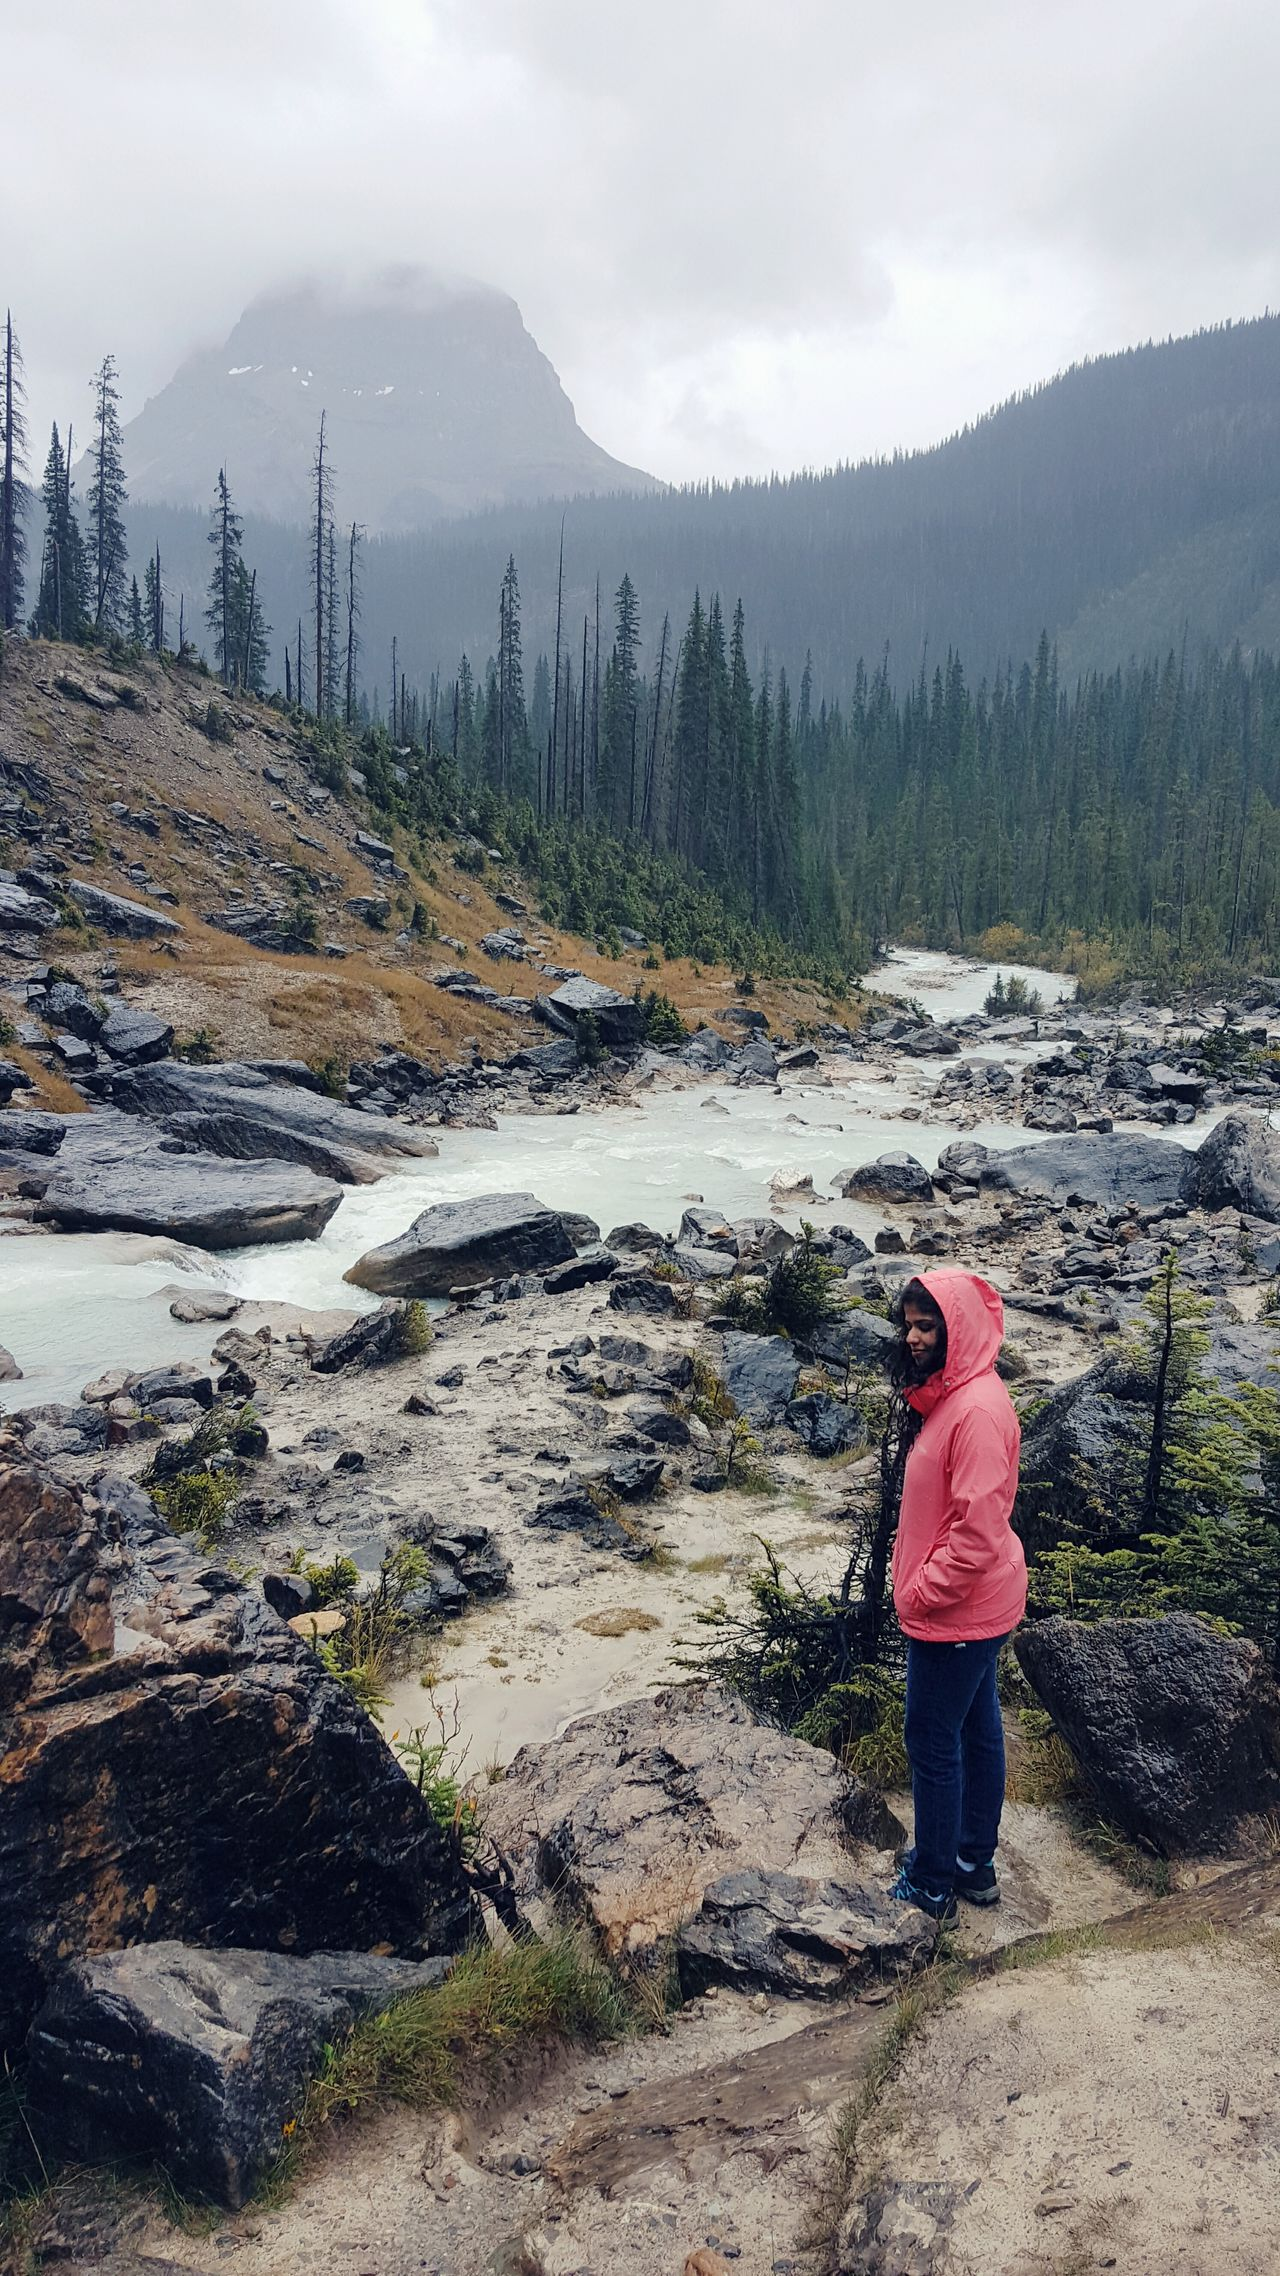 One Person Nature Landscape Full Length Outdoors People Beauty In Nature Mountain Day Rainy Weather Young Female One Woman Hiking Female Female Hiker Active Lifestyle  Stream Raincoat Activewear Tranquility Spring Women And Nature Rain Canadian Rockies